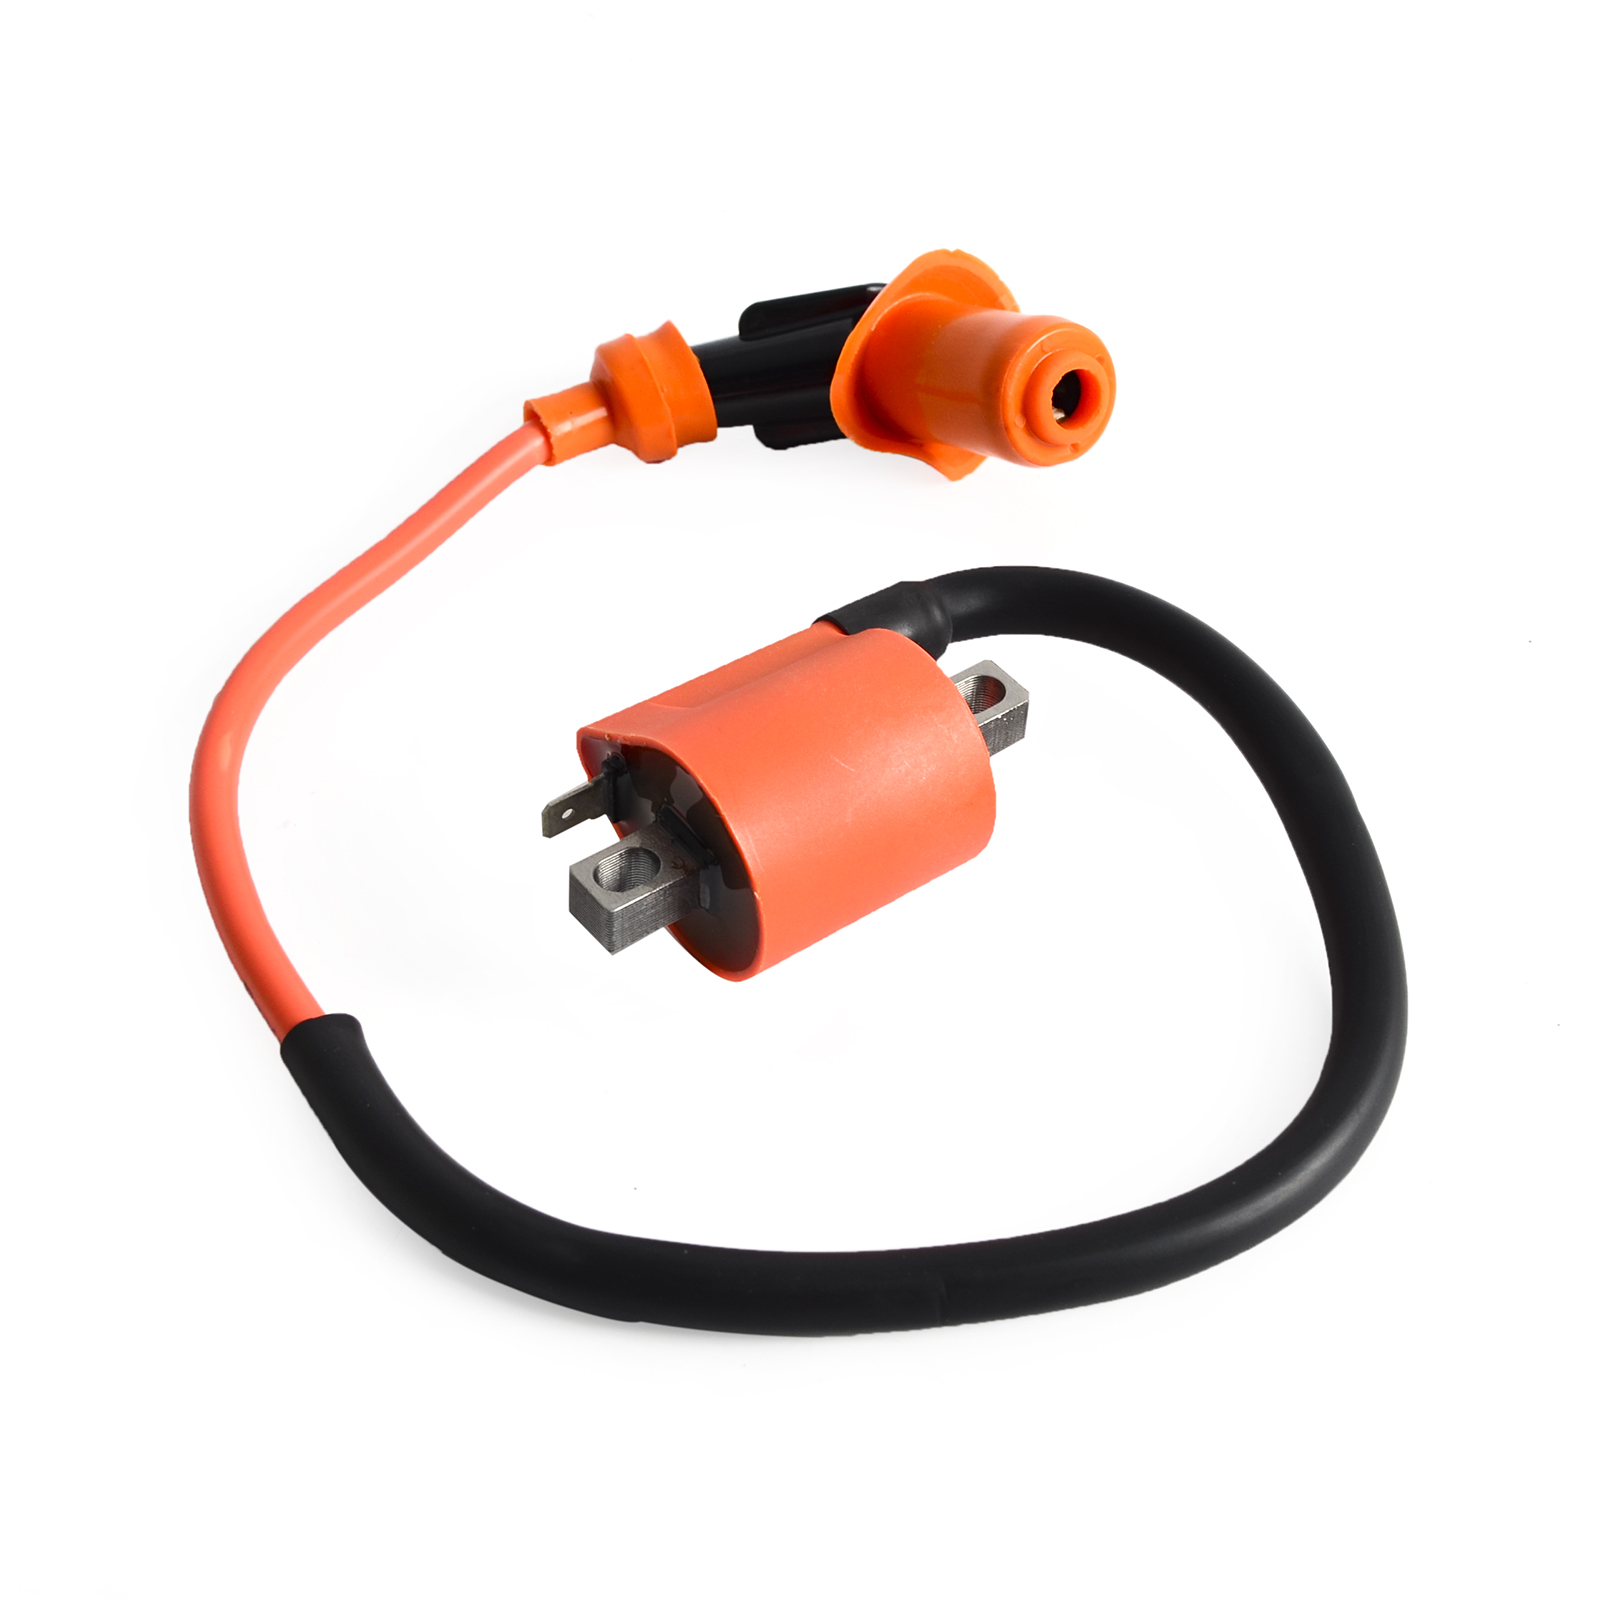 medium resolution of racing ignition coil for yamaha pw50 pw80 yfm350 450 raptor 250 125 warrior bigbear 250 350 in motorbike ingition from automobiles motorcycles on